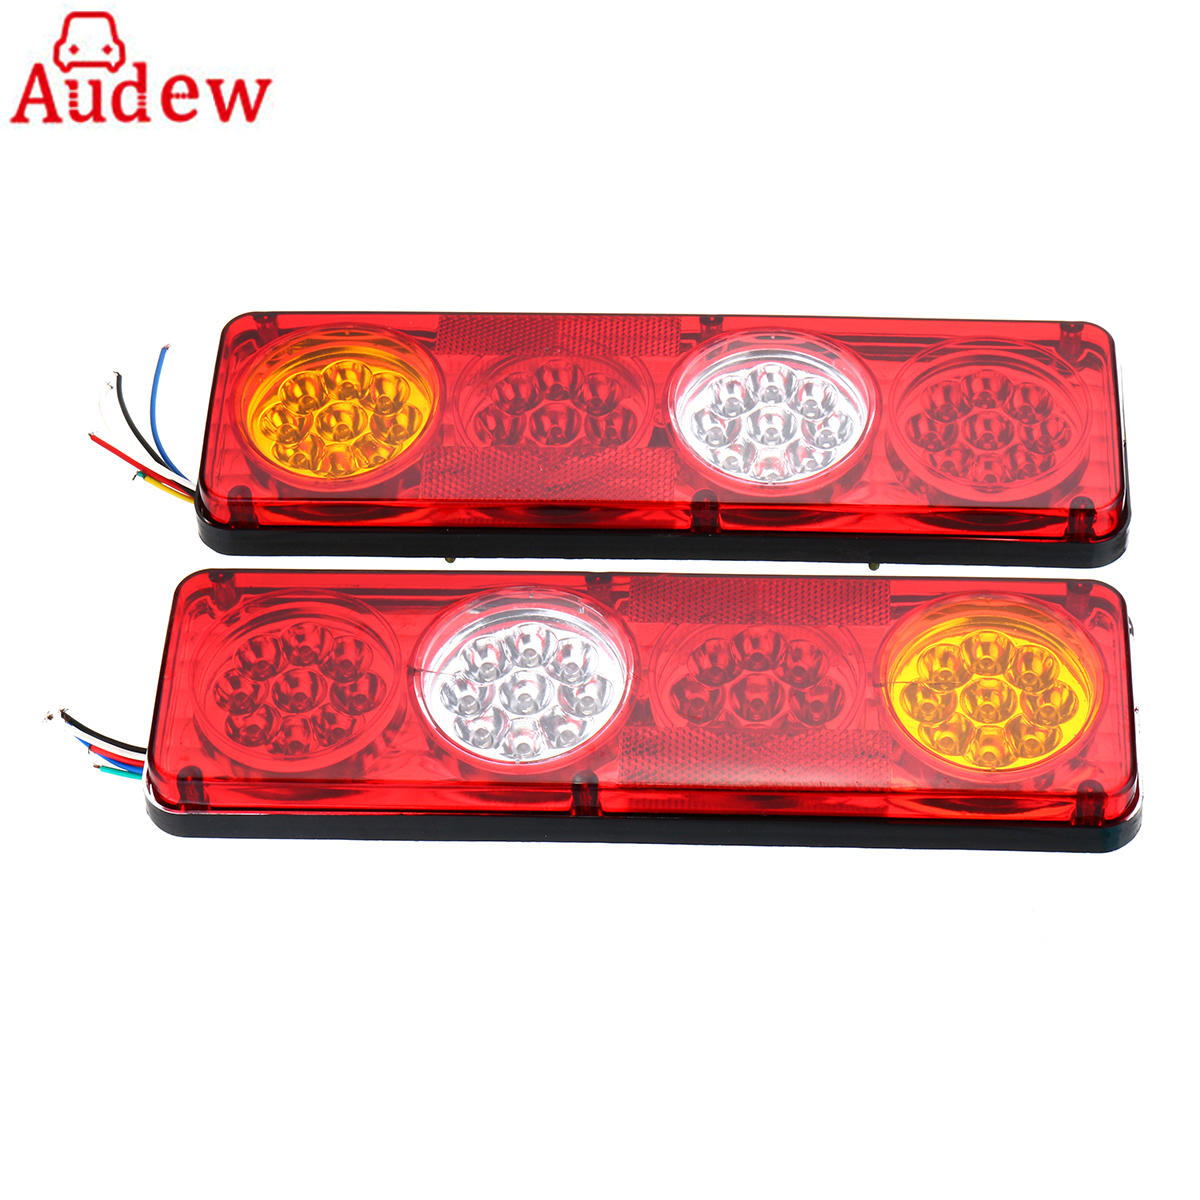 2pcs LED Waterproof Car Rear Tail Lights Lamp Brake Stop Light for Trailer Caravan Truck Lorry 36LED 24V 3Colors конденсатор duelund vsf 100 v 22 uf copper